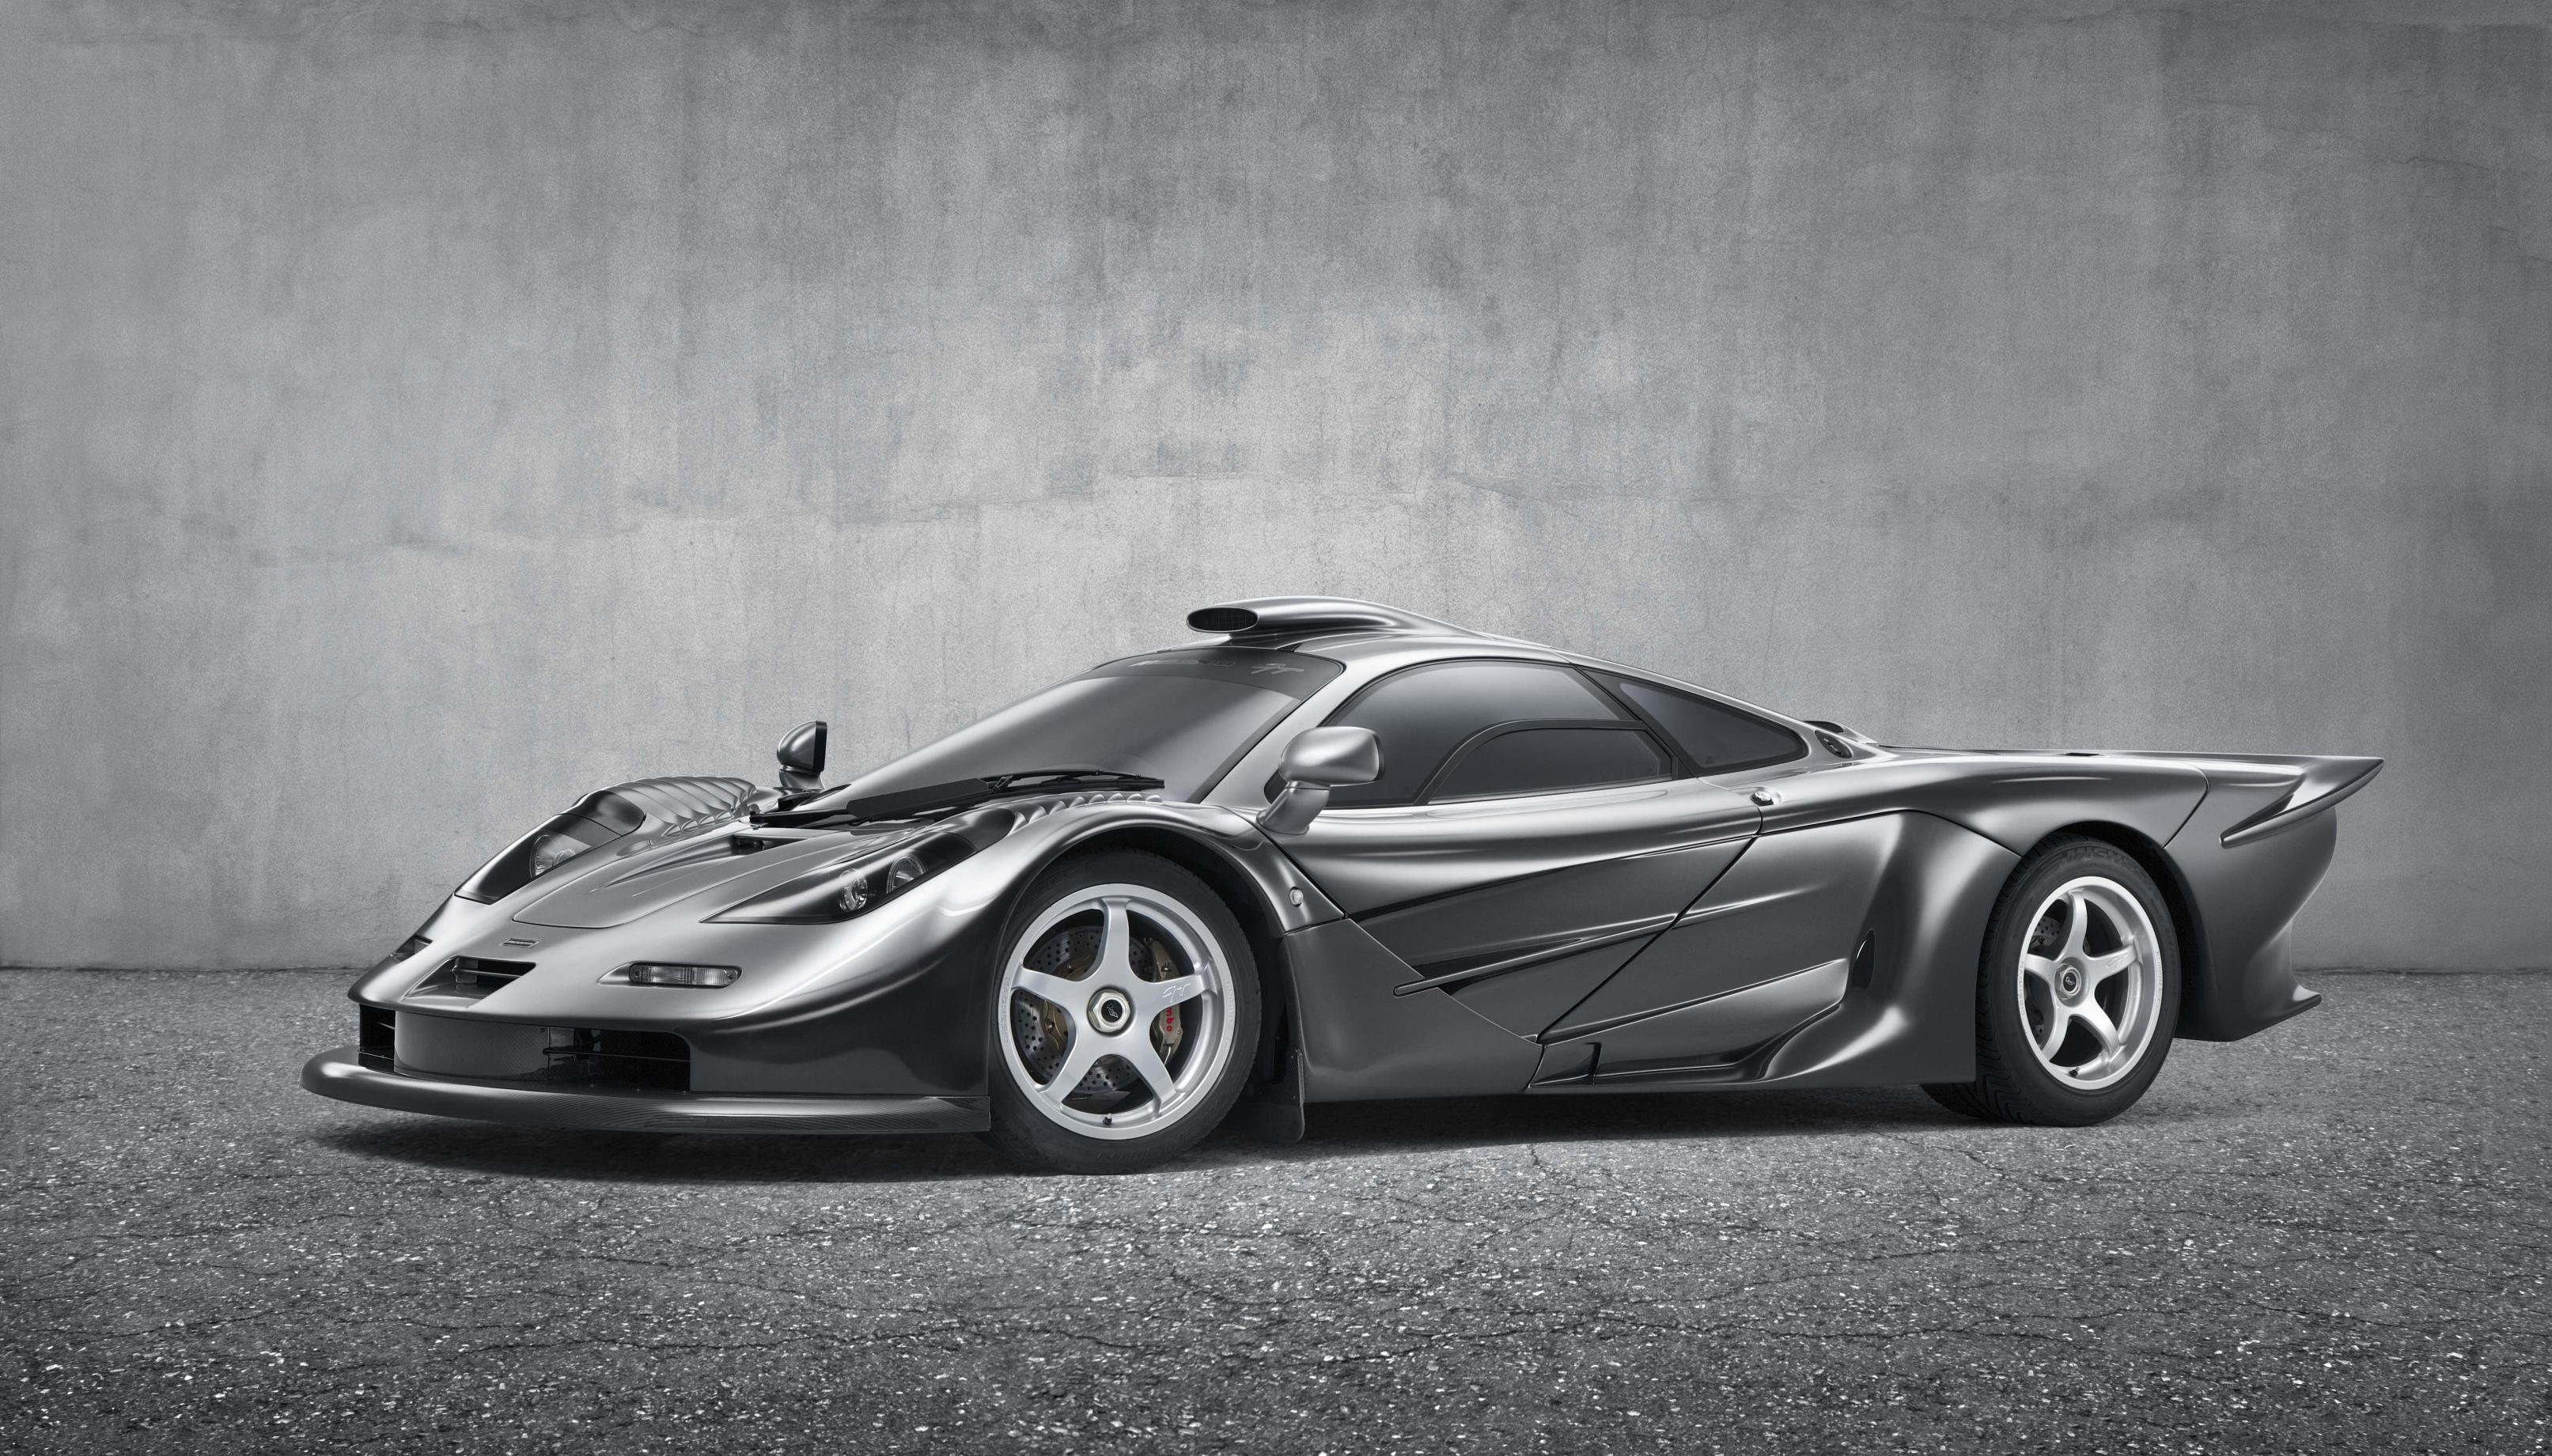 One of the rarest McLaren roadcars ever built, the McLaren F1 GT. Kindly loaned to McLaren for display at Goodwood, chassis #58F1GT is one of only three examples, designed and built to homologate the McLaren F1 GTR 'Longtail' for GT racing during the 1997 season. The livery echoes the famous monochrome design of the Formula 1 team during the late 1990s, driven to back-to-back world titles by Finnish racing driver Mika Hakkinen in 1998 and 1999.